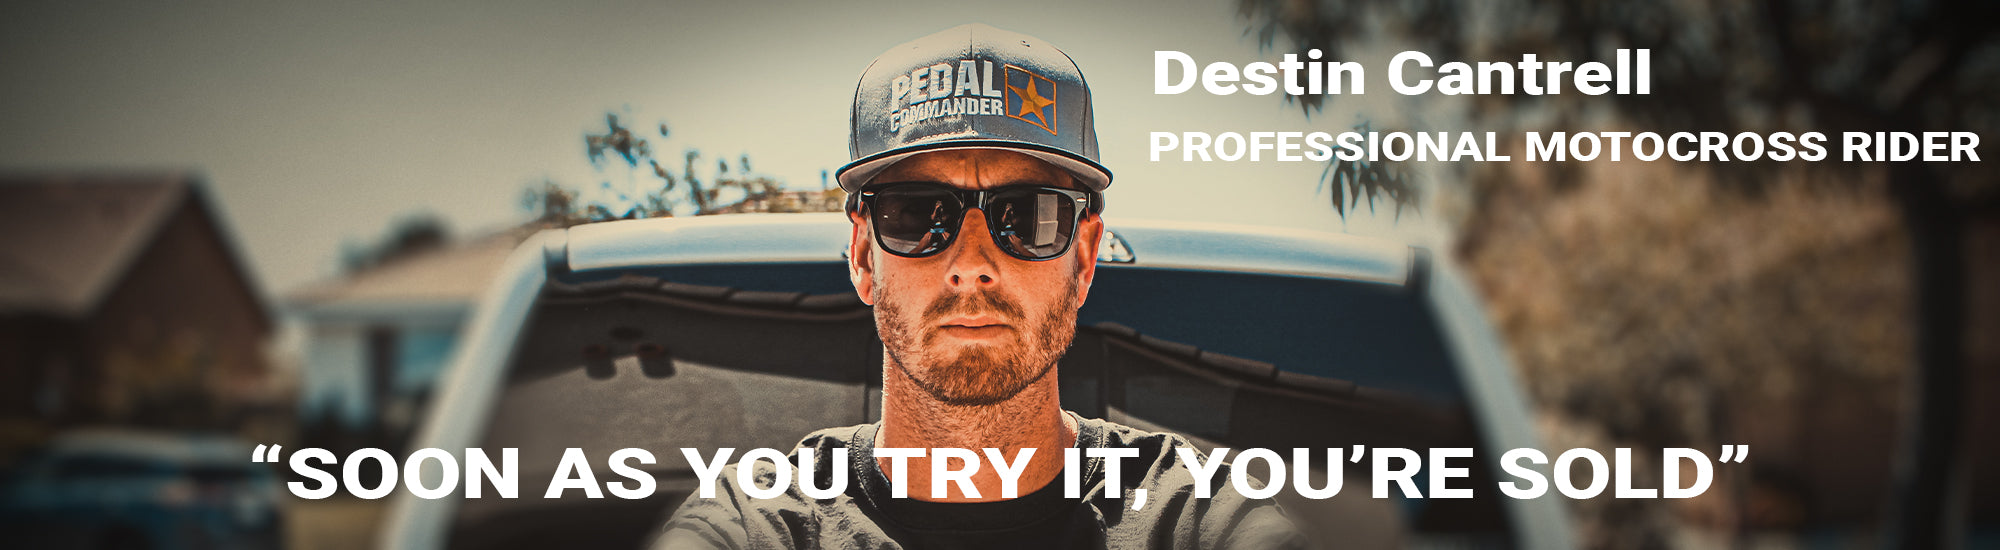 Destin Cantrell with Pedal Commander Photo